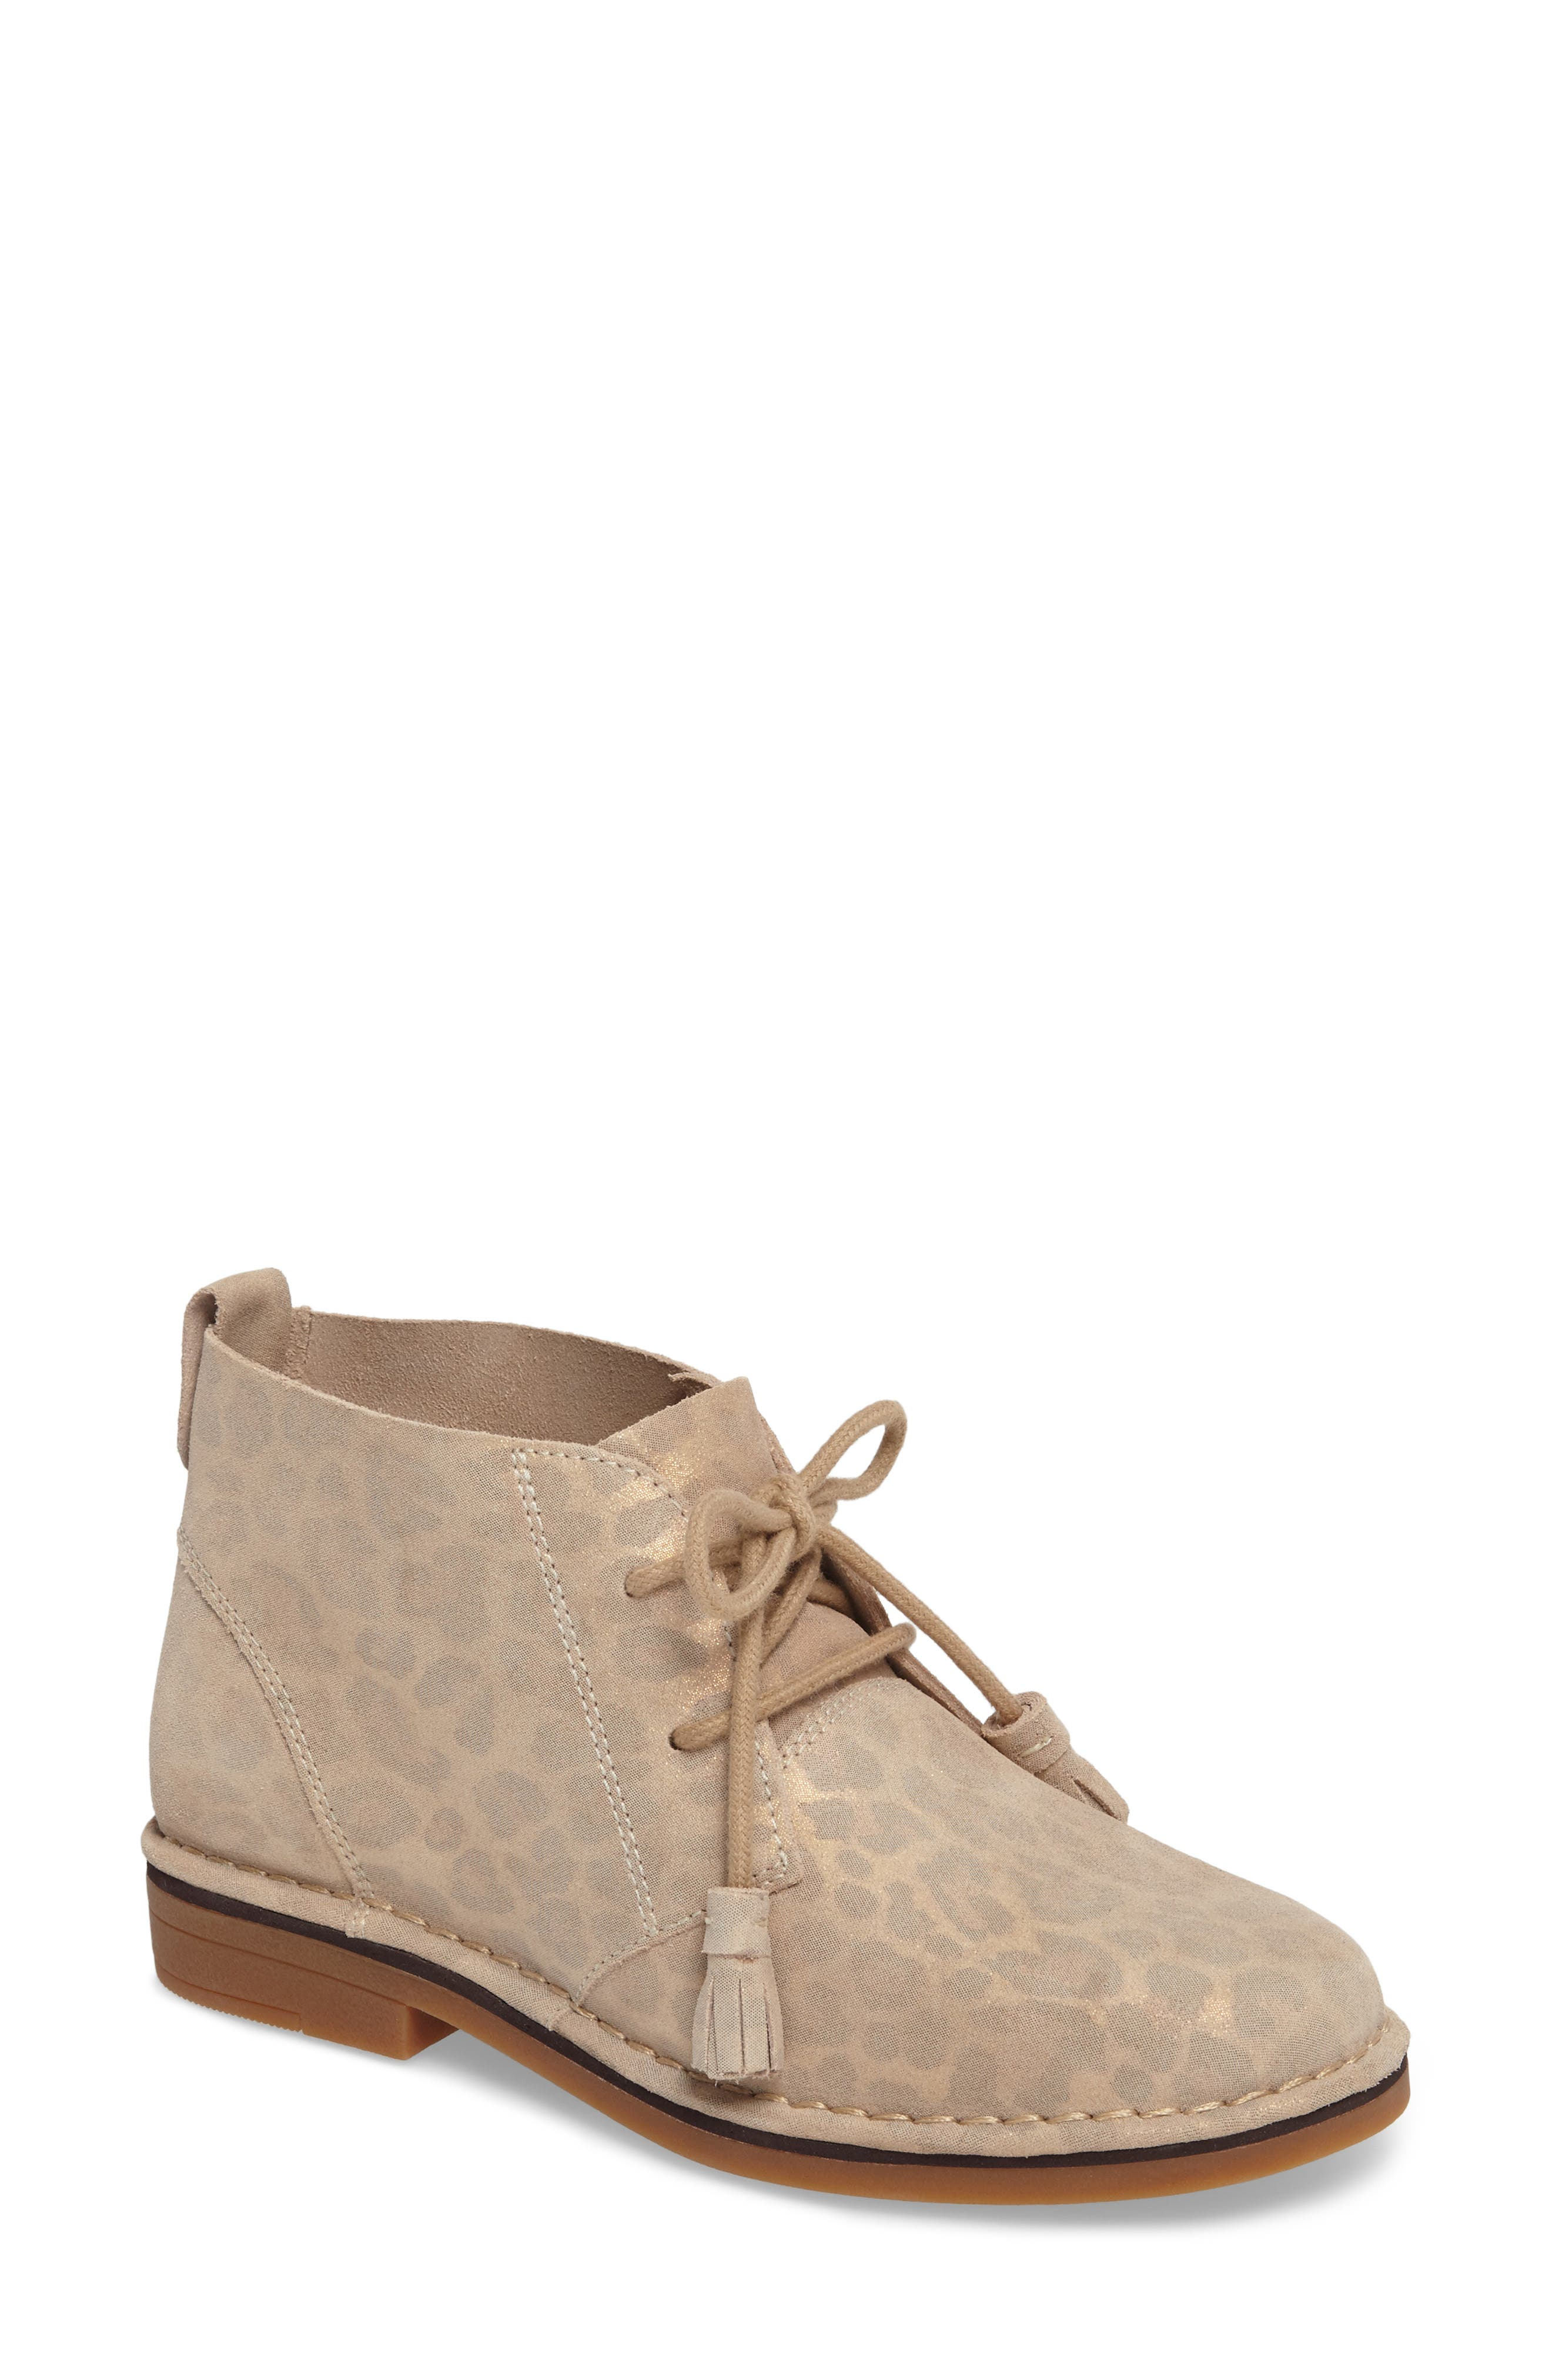 Cyra Catelyn Water Resistant Chukka Boot,                         Main,                         color, 290